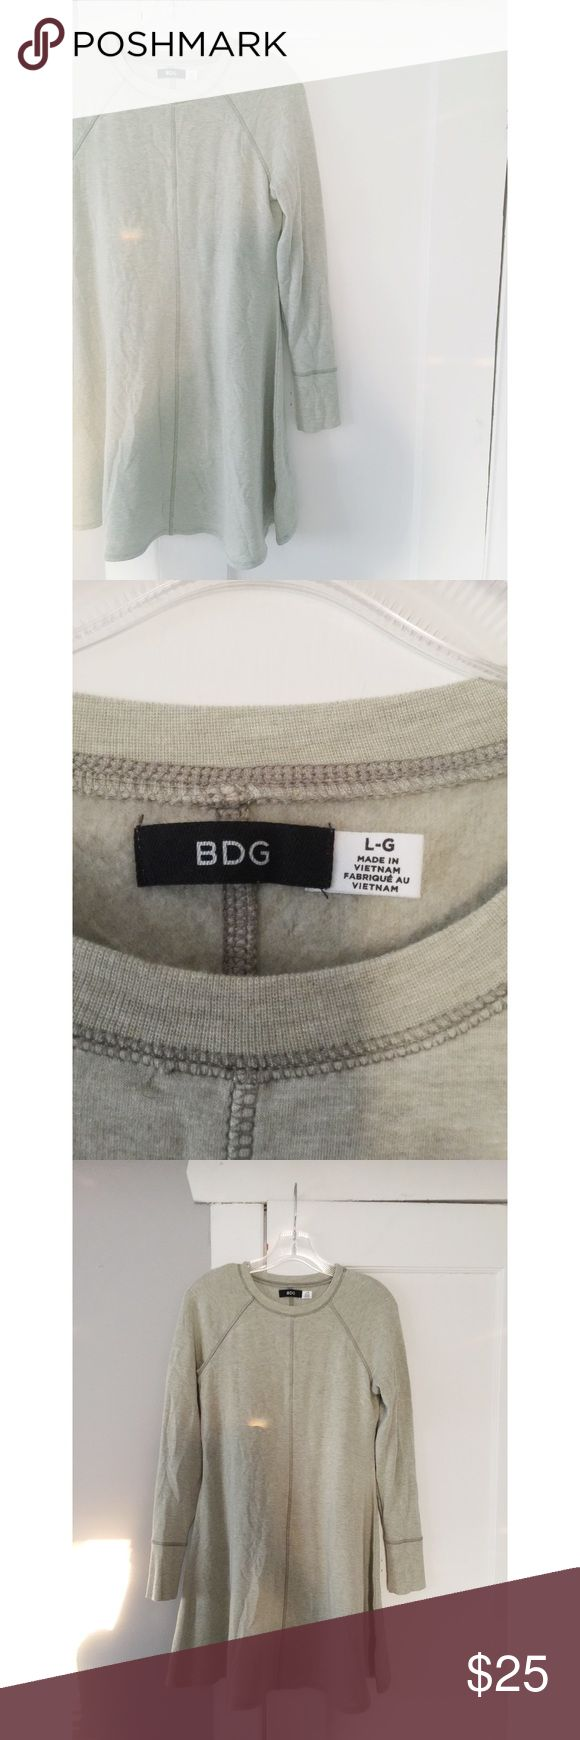 """Urban Outfitters """"BDG"""" Sweatshirt Tunic Urban Outfitters """"BDG"""" Sweatshirt Tunic.  Light moss green in color.  Great condition.  Women's size large. Urban Outfitters Tops Tunics"""